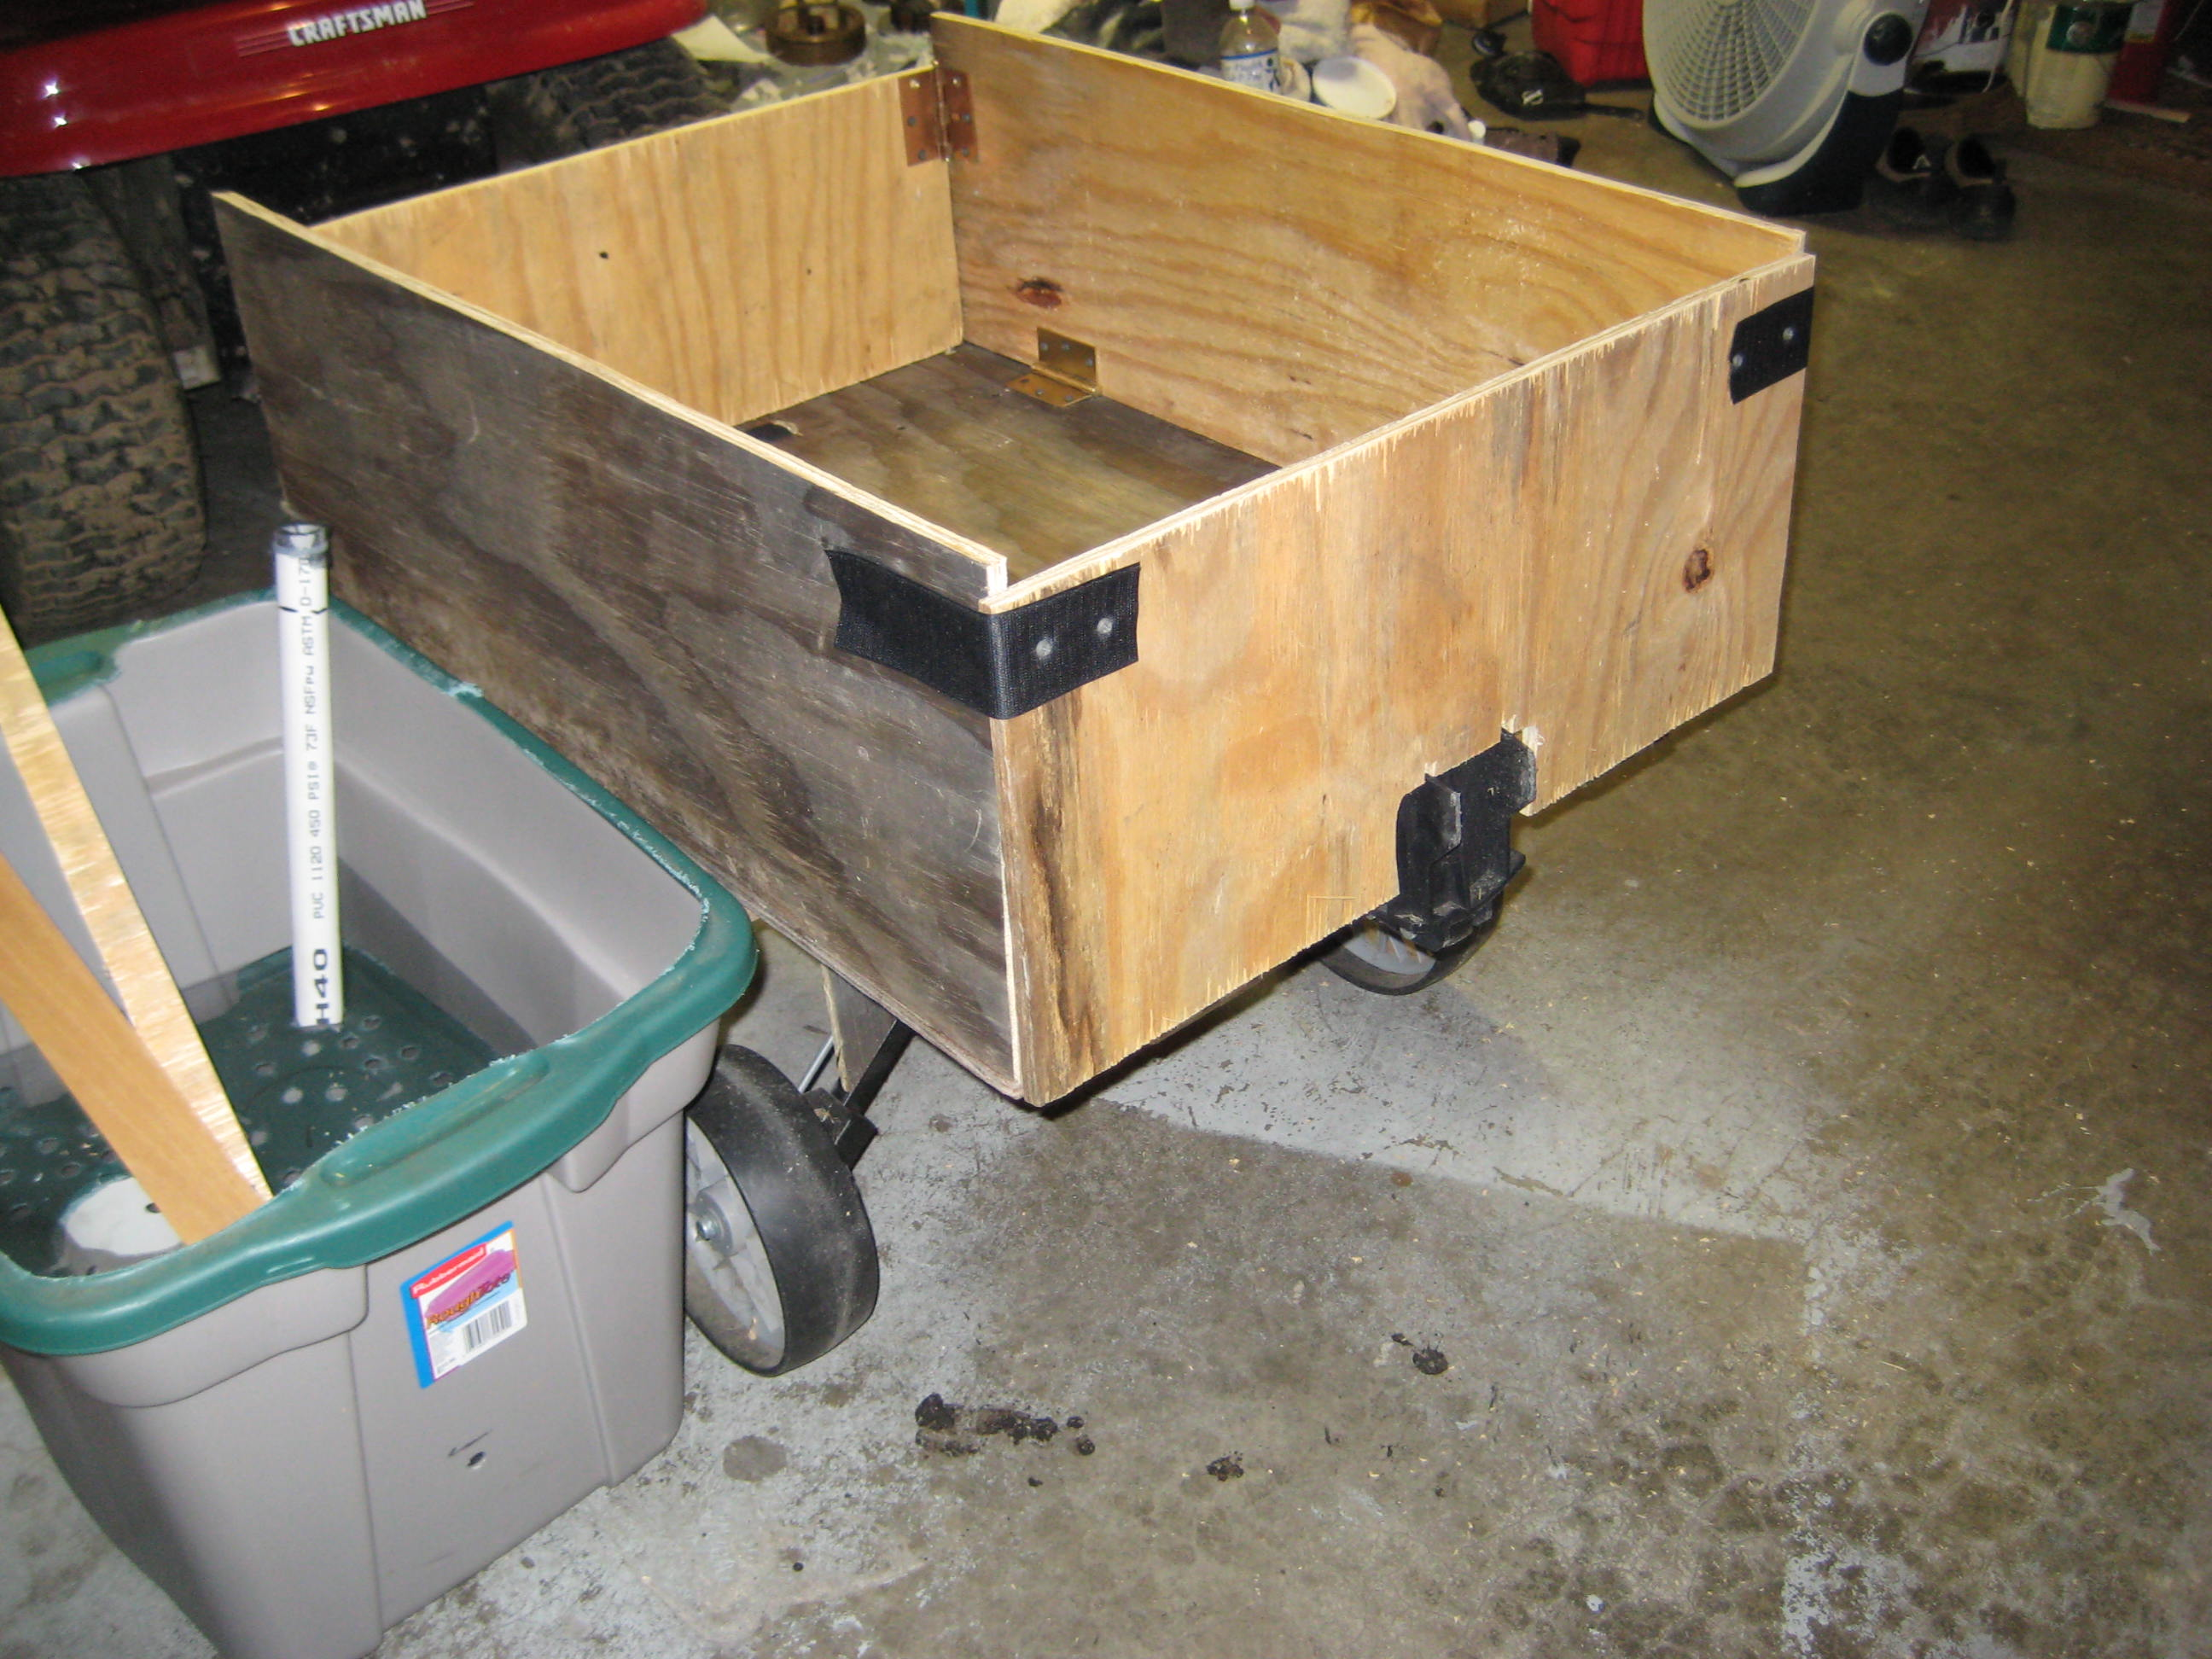 Picture of Yard Cart (Wagon) for Hand or Tractor Use From Golf Cart.